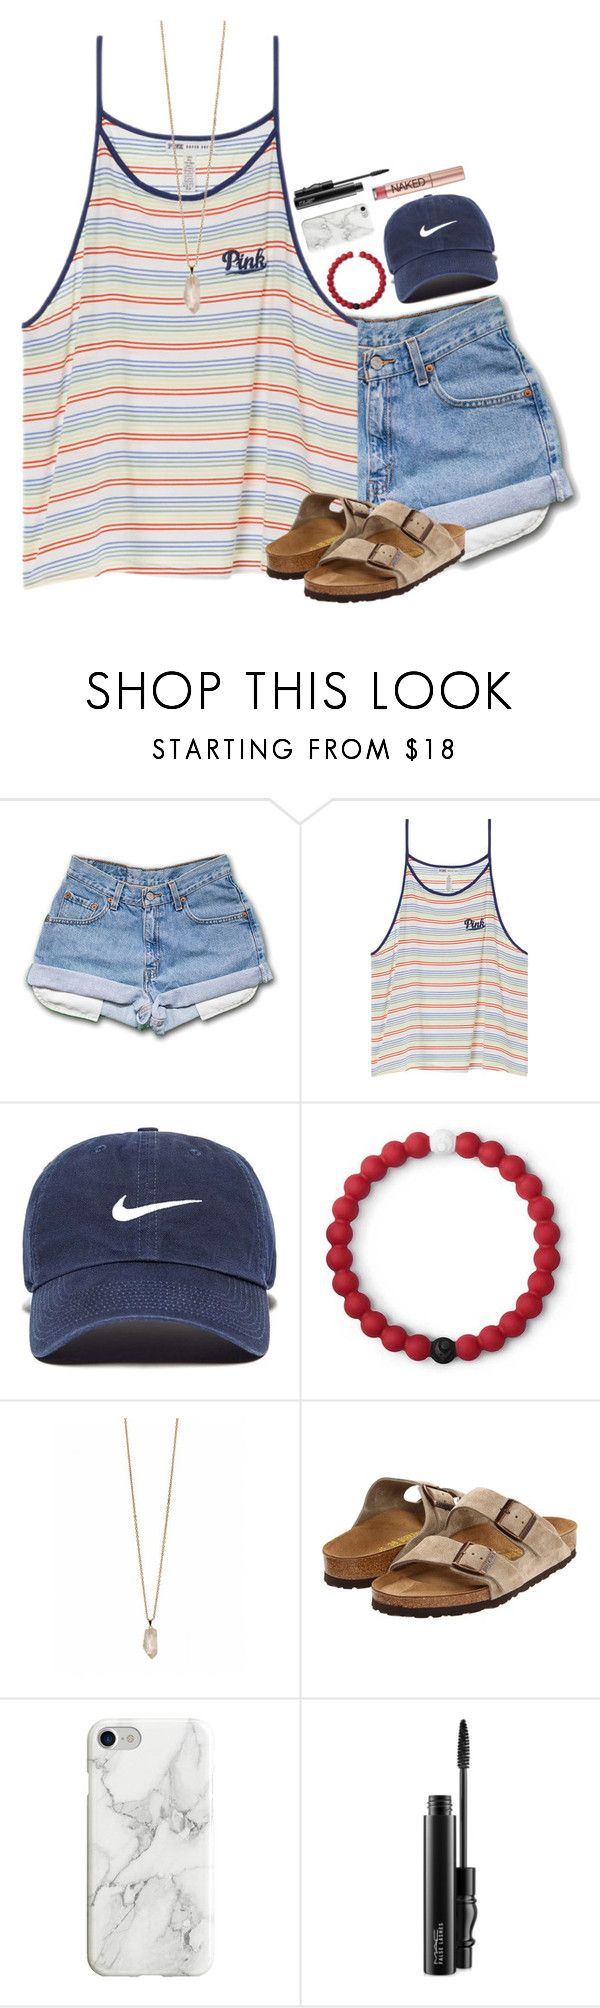 """75 and sunny"" by neutralskies ❤ liked on Polyvore featuring Victoria's Secret, NIKE, Lokai, Zoya, Birkenstock, Recover, MAC Cosmetics and Urban Decay"